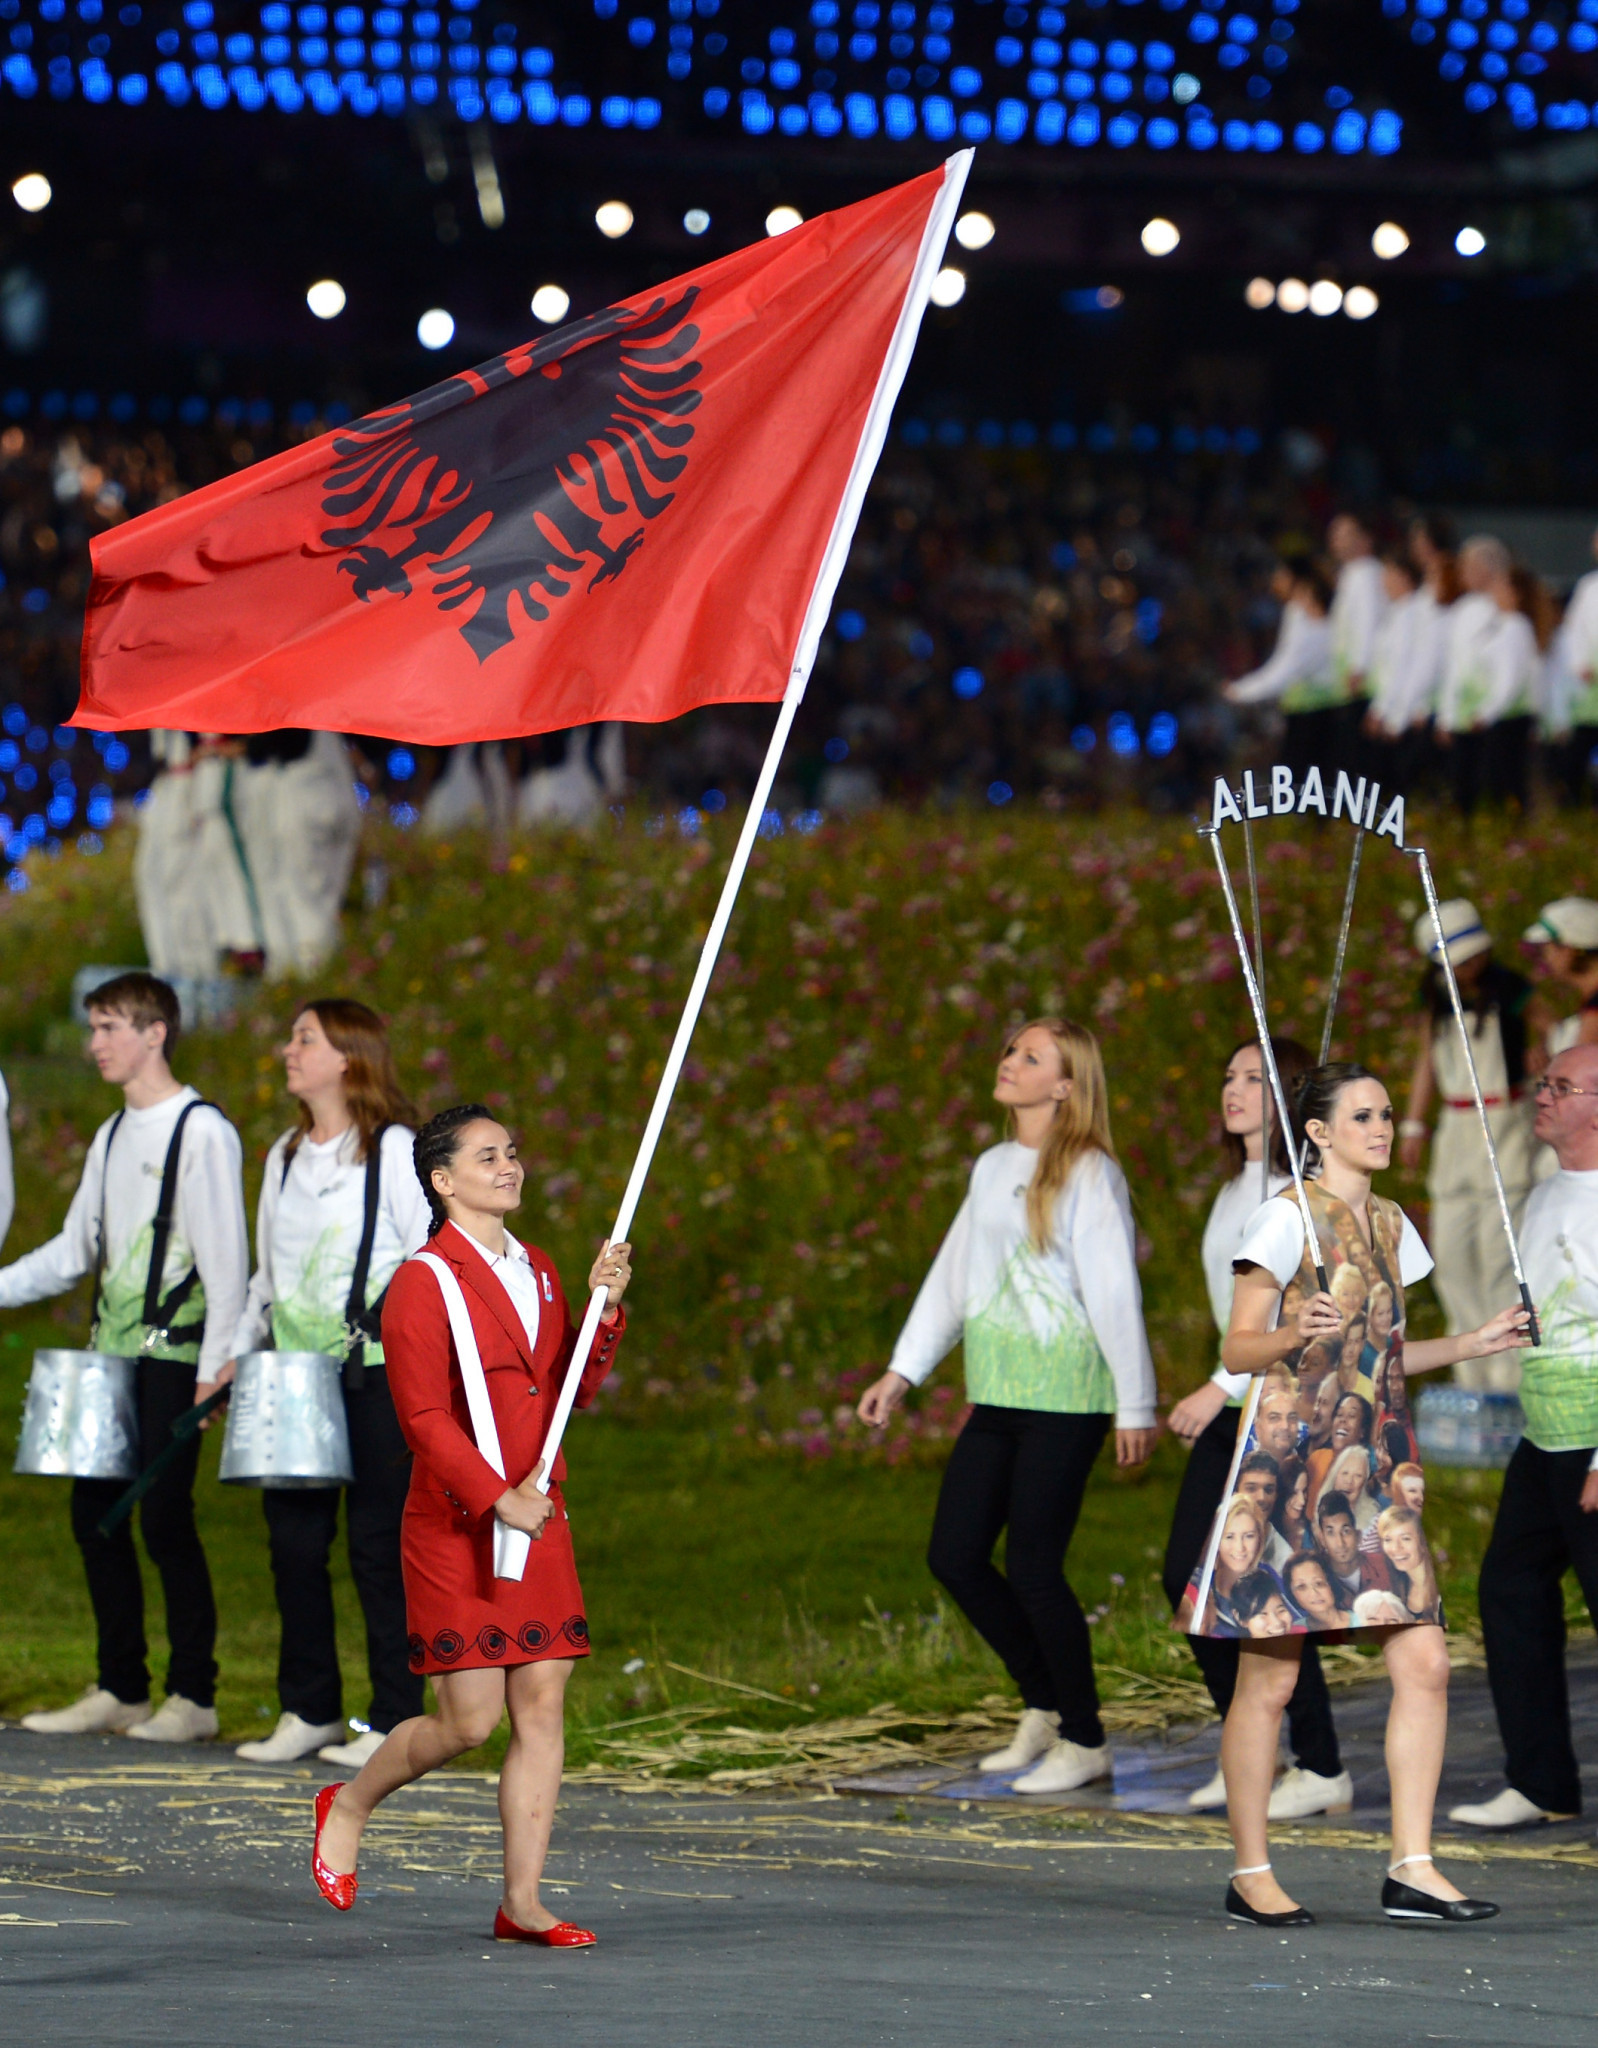 Romela Begaj had carried Albania's flag at the Opening Ceremony of London 2012 ©Getty Images